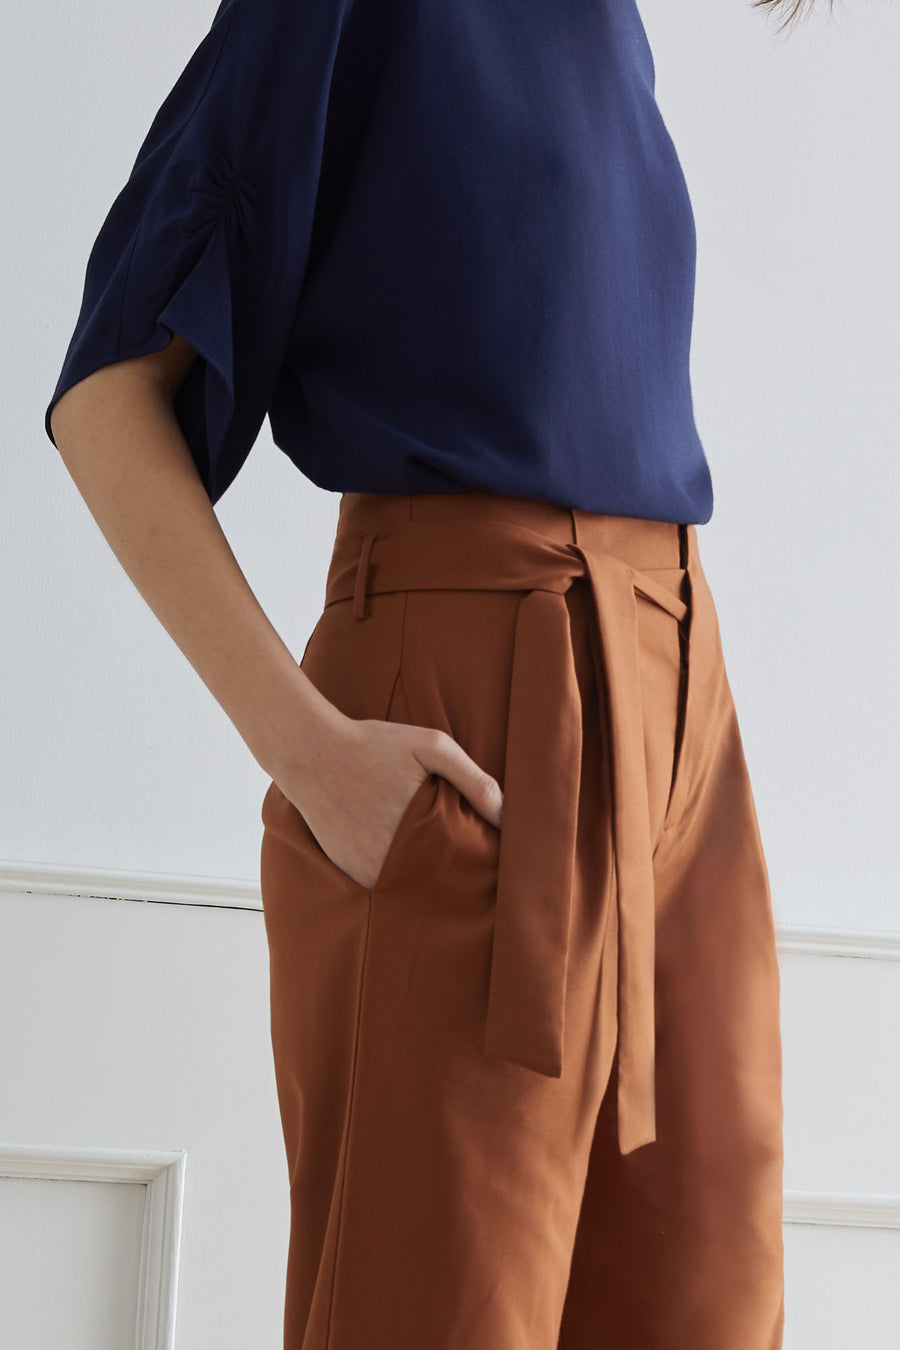 ROUEN Pants with Slip-In Belt